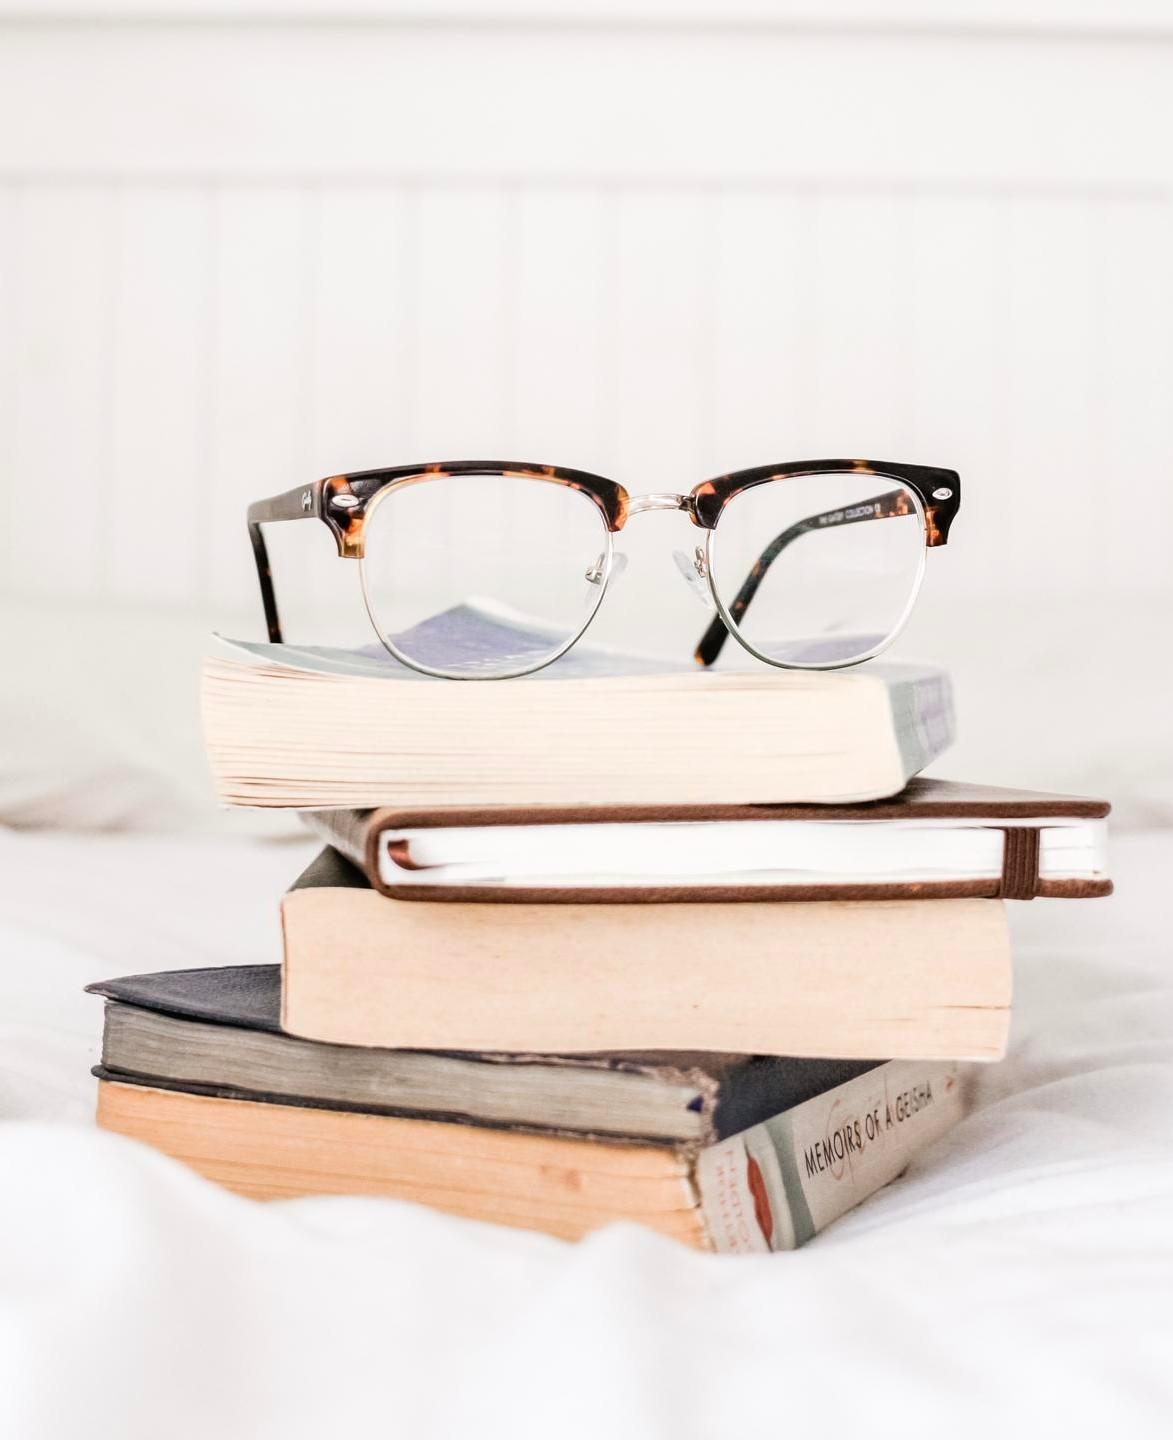 photo of books and eyeglass